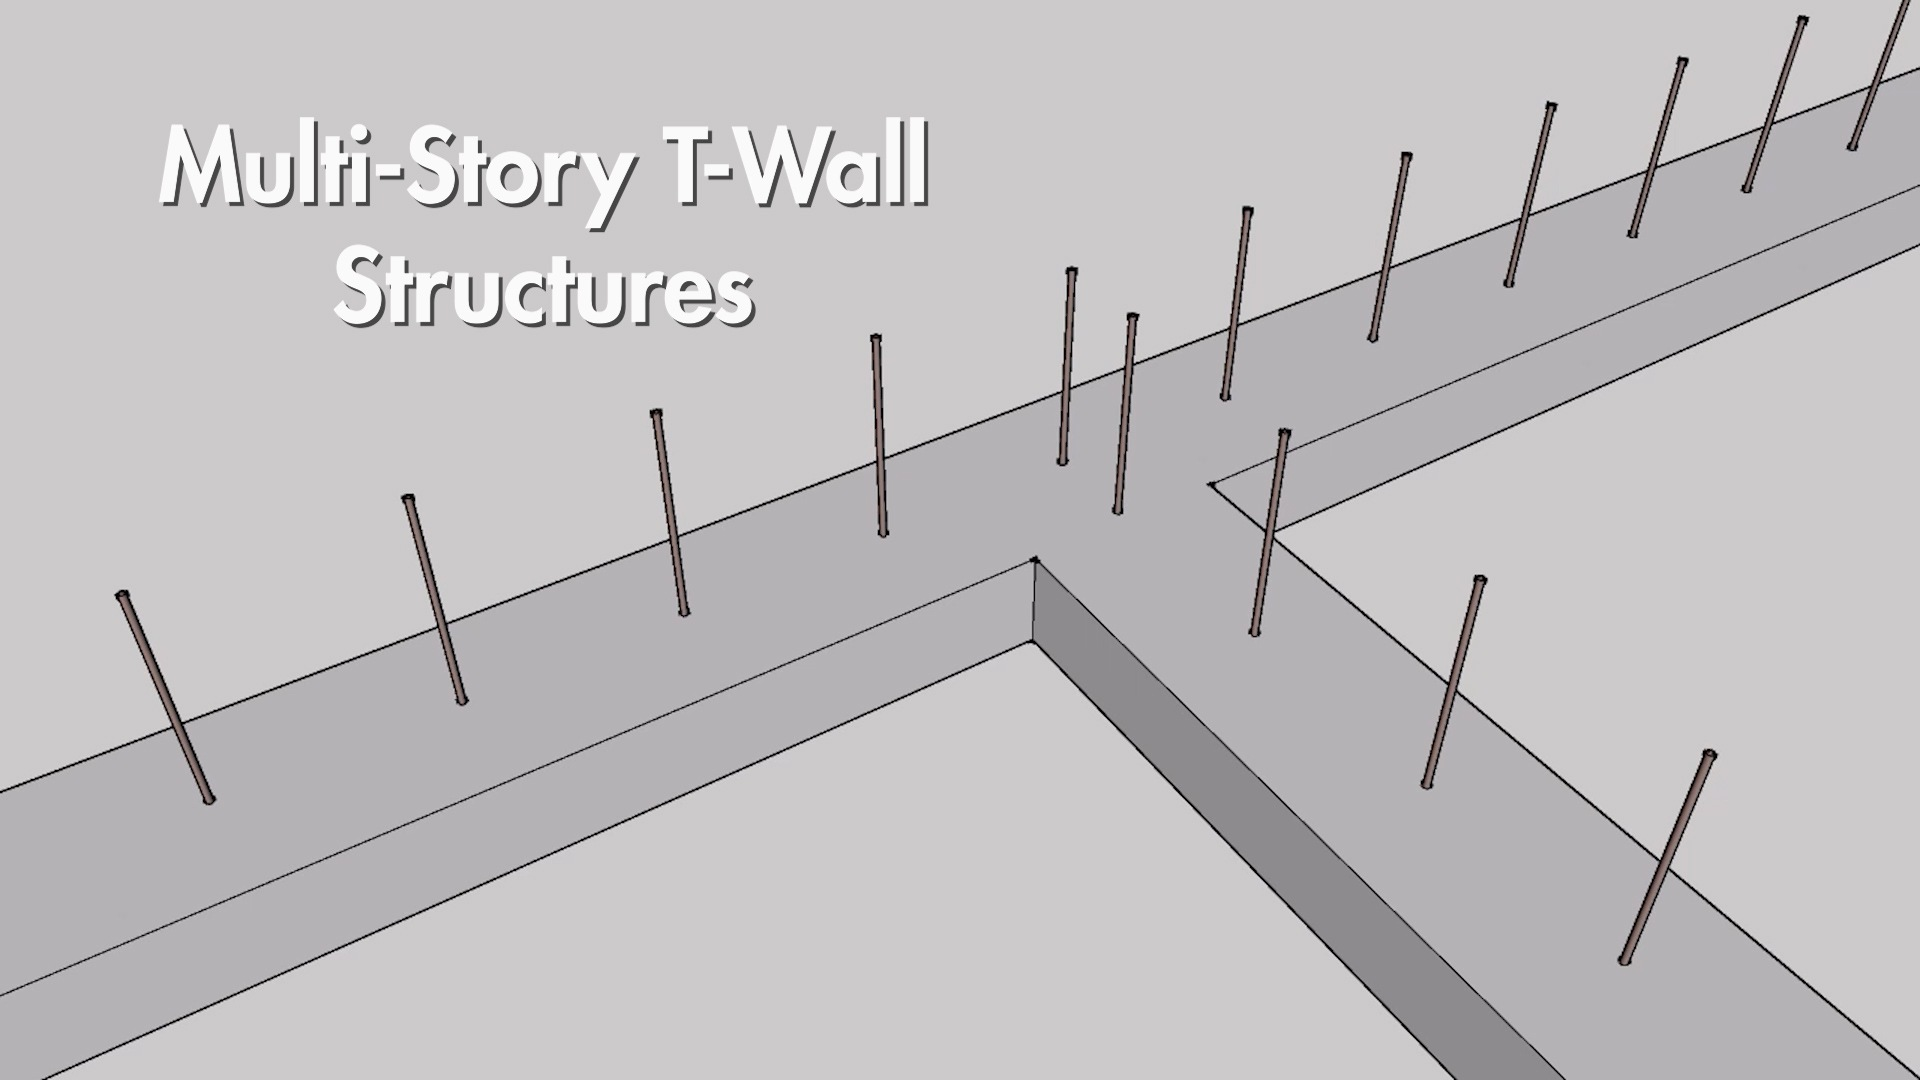 Video: How To Construct T-Walls For Multi-Story Structures